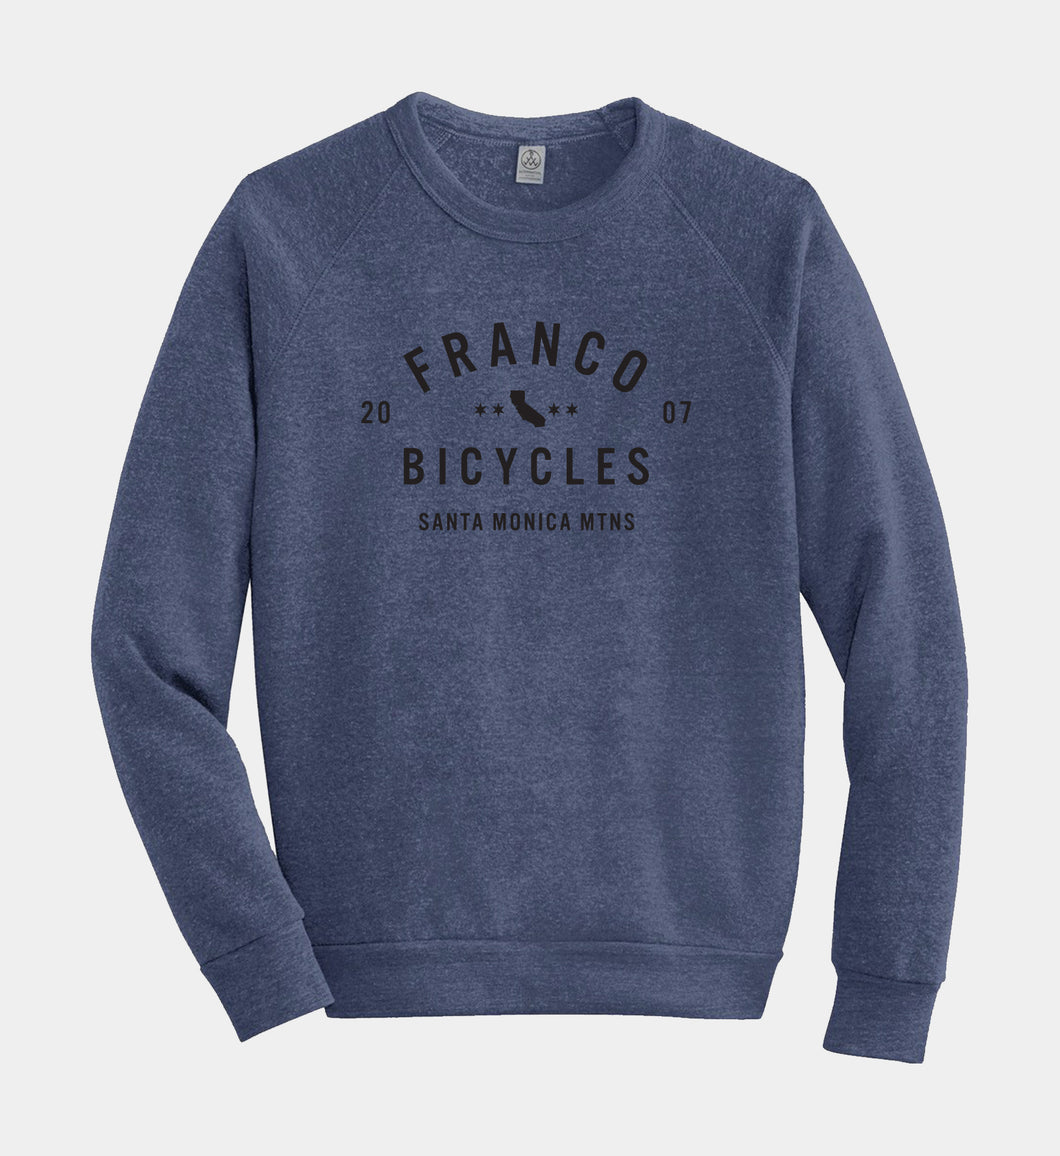 Franco SMMT Sweatshirt Navy Blue